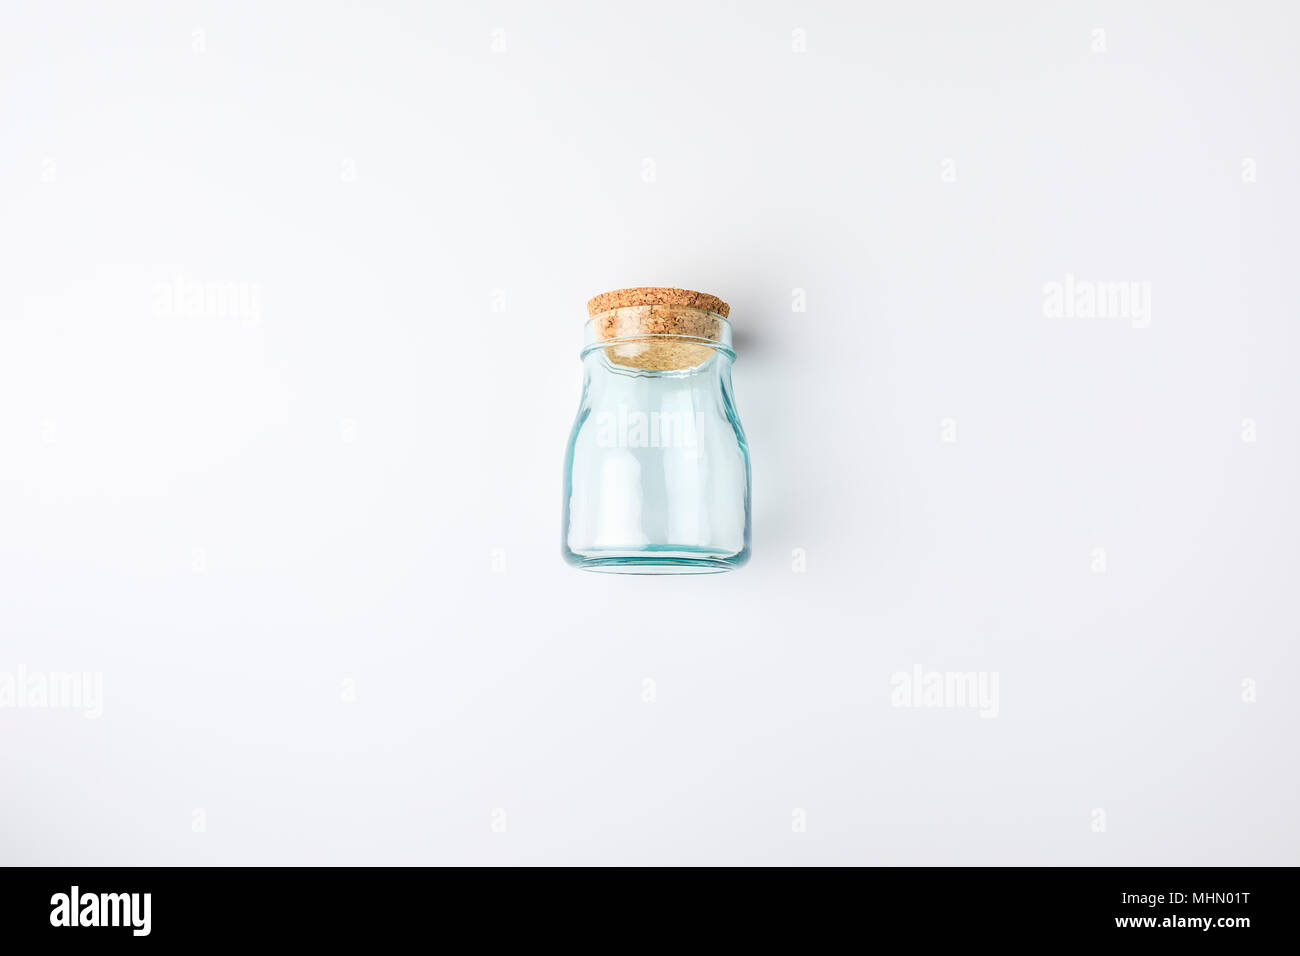 transparent glass bottle with bung - Stock Image